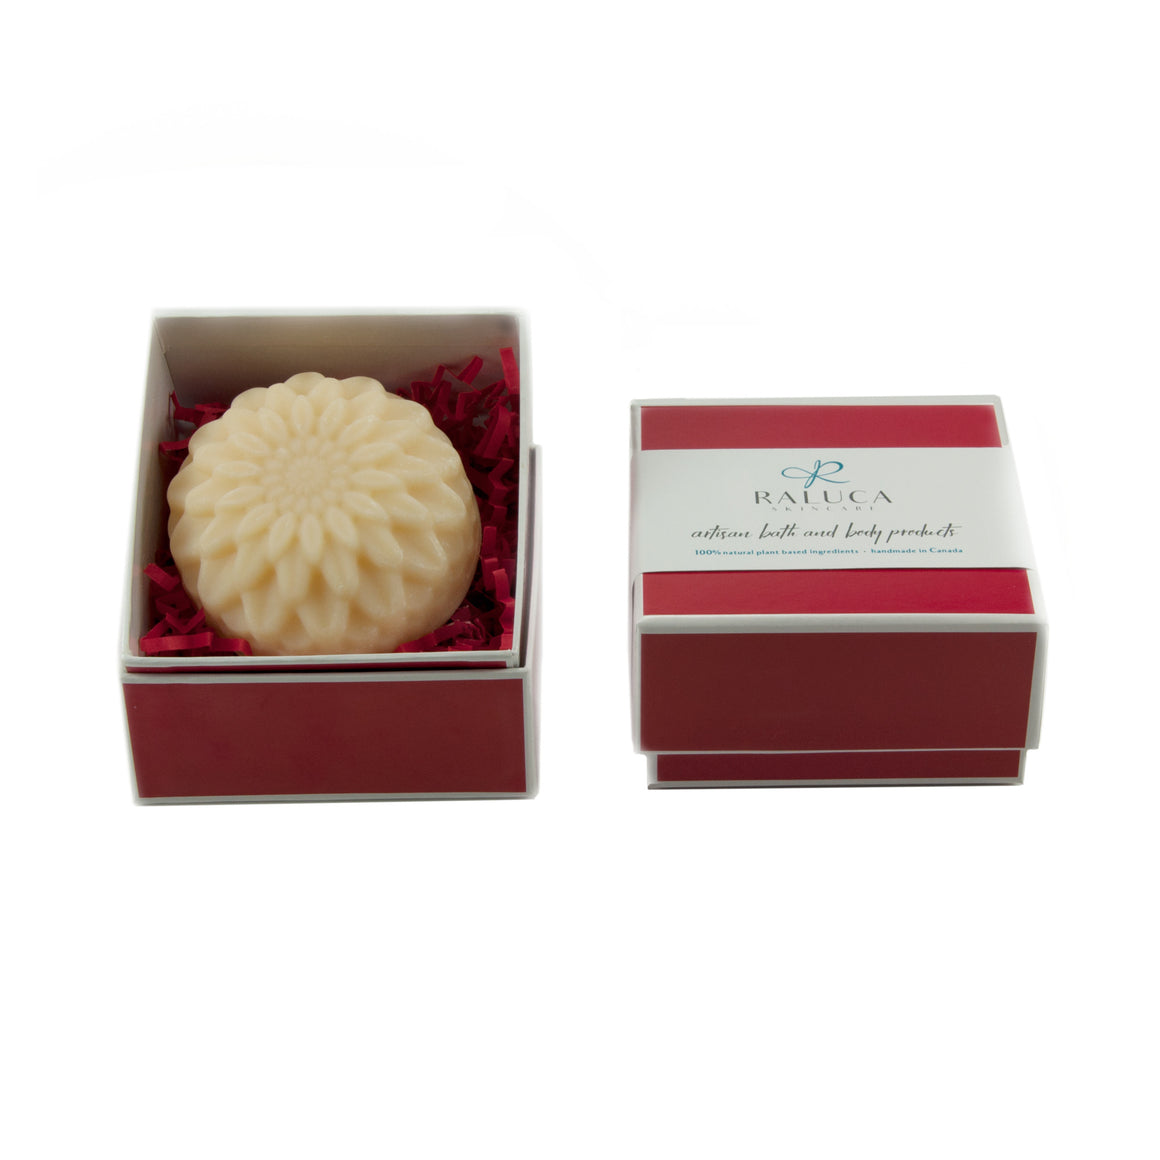 Raluca Skincare - Blossom Artisan Soap Set - White Chrysanthemum - flower shaped soap